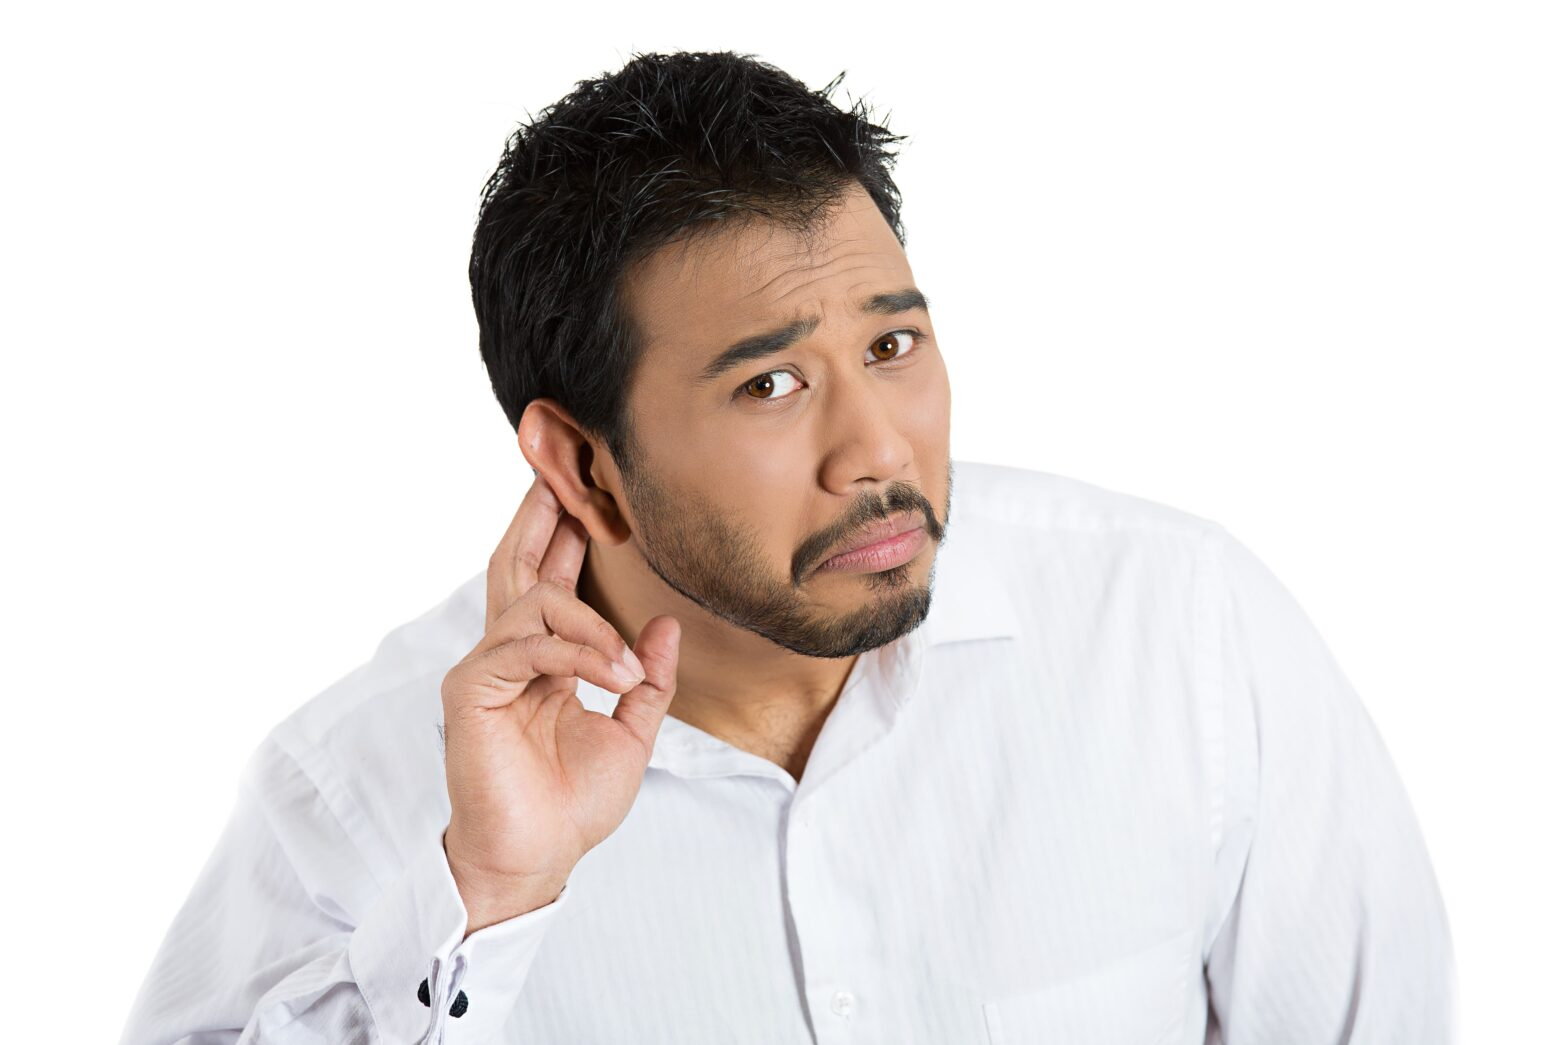 Man trying to hear